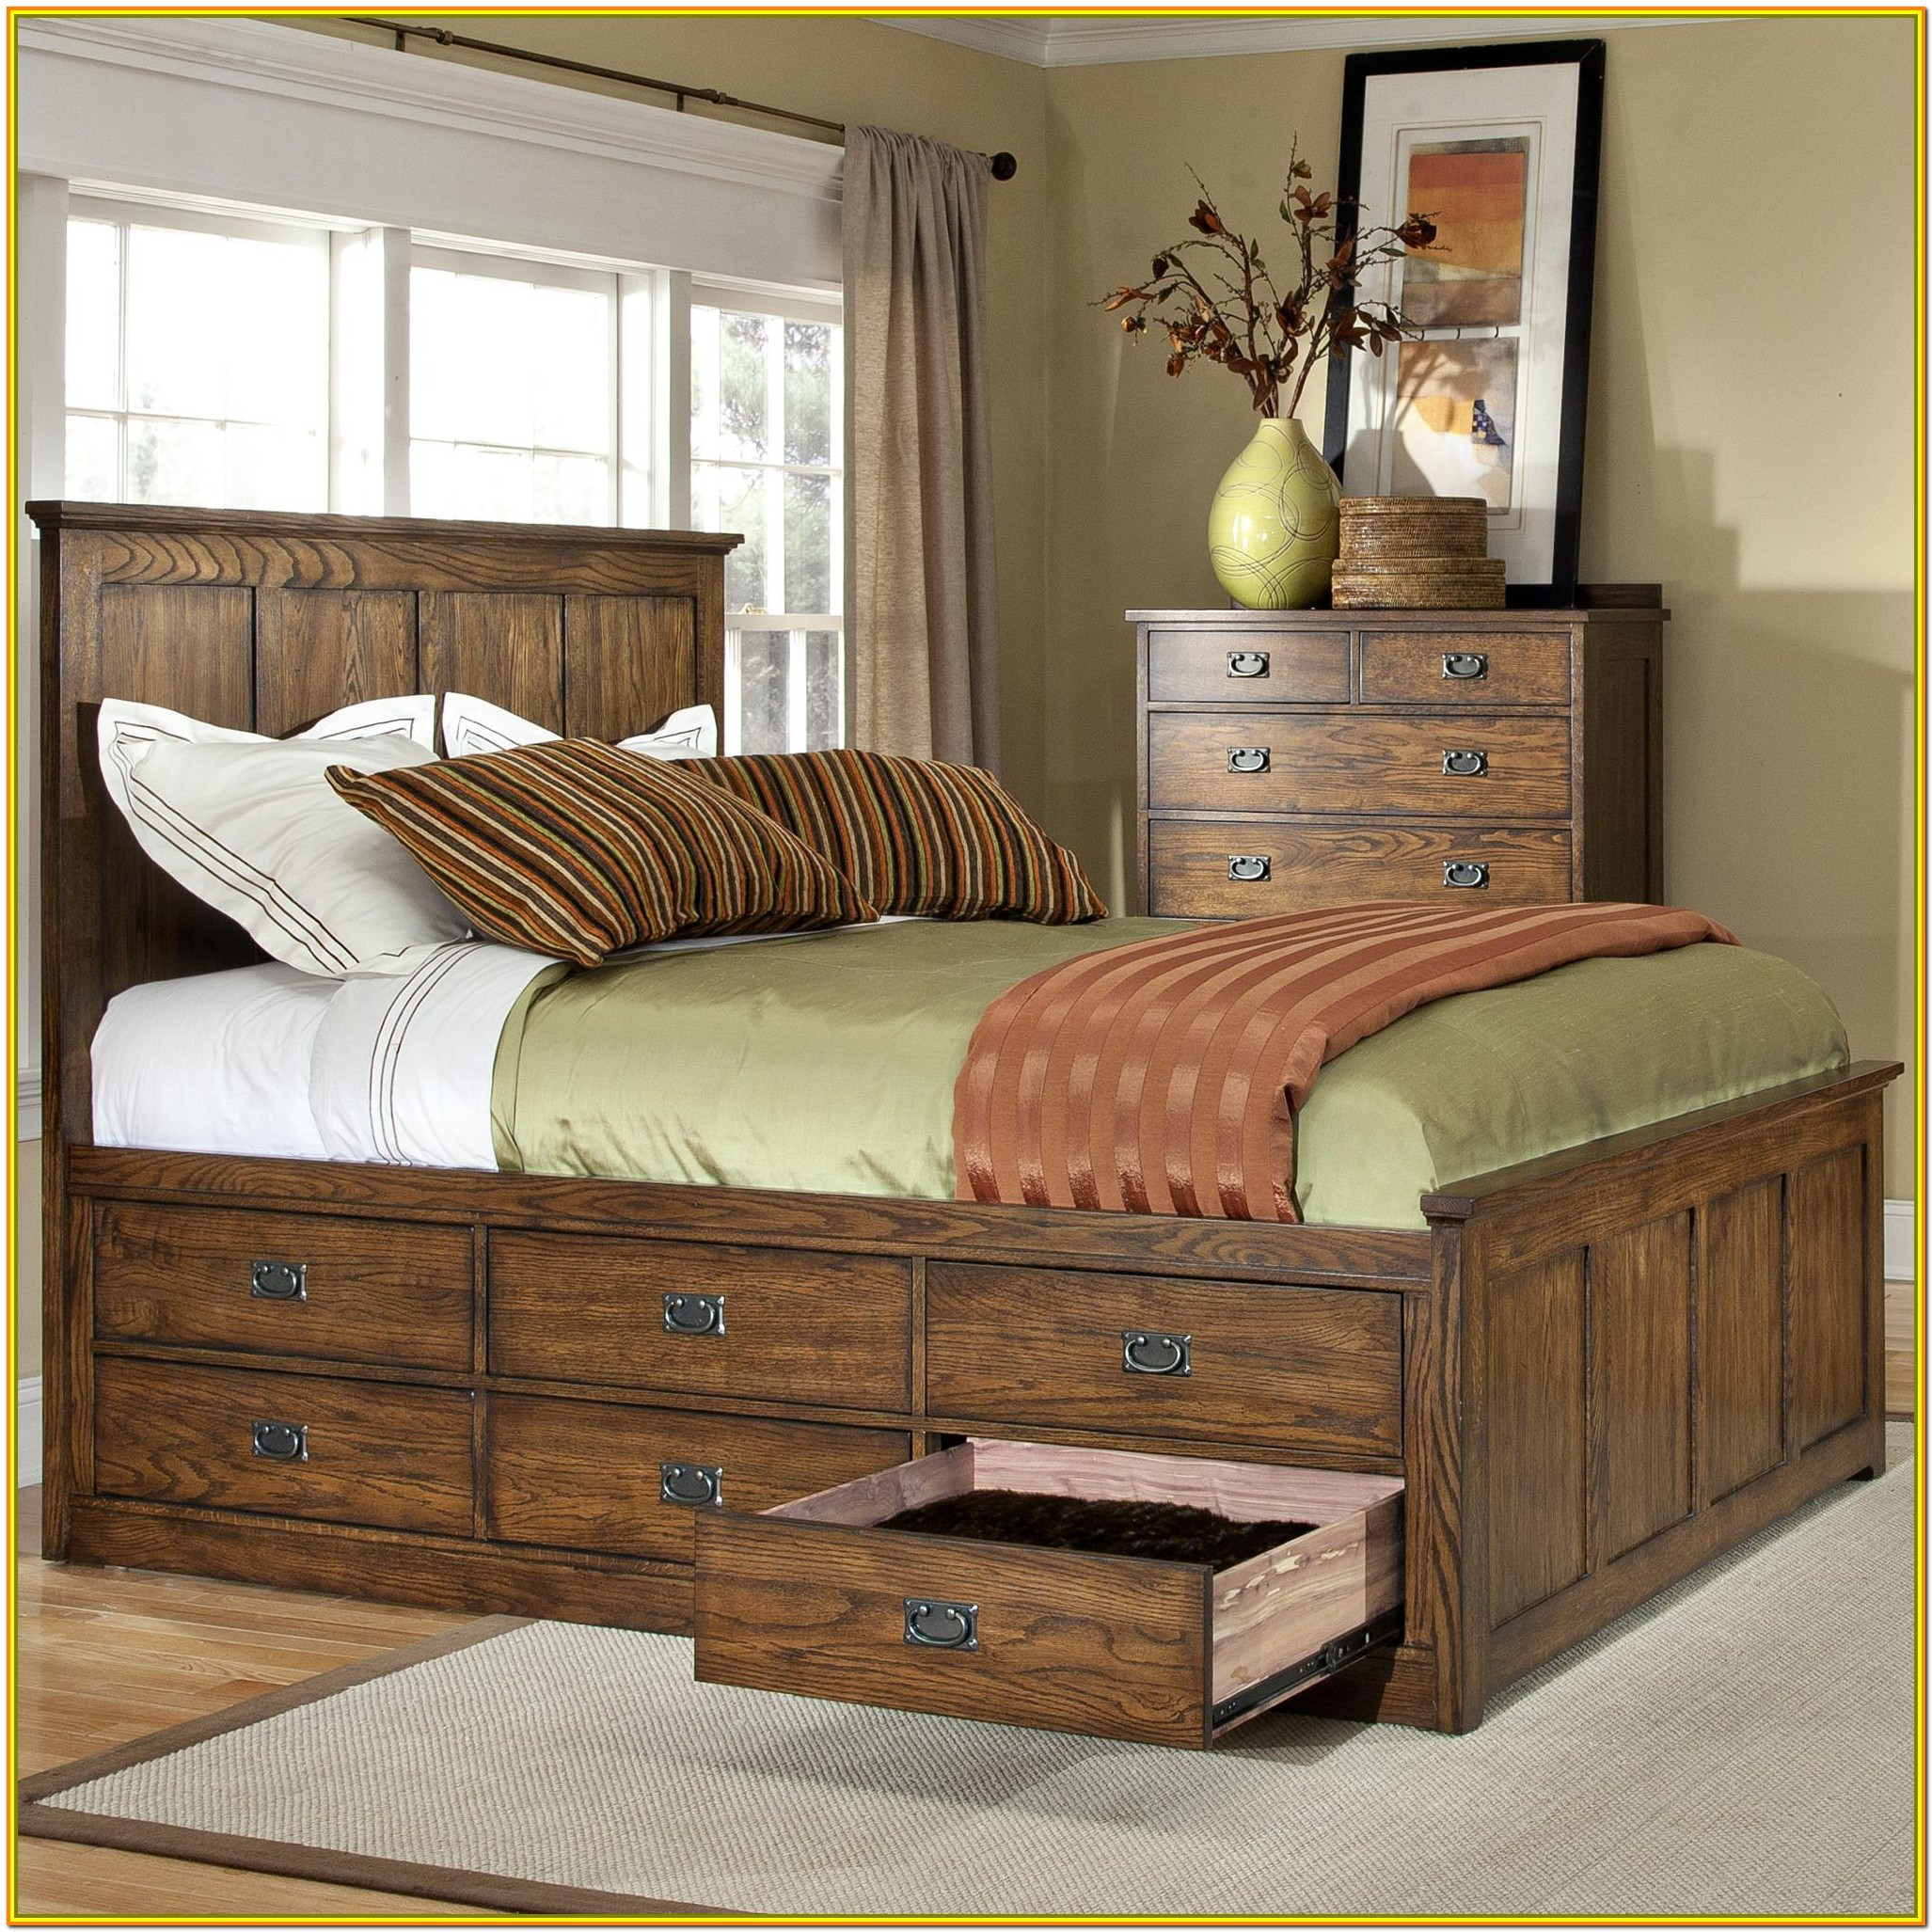 King Size Platform Bed With Storage Drawers